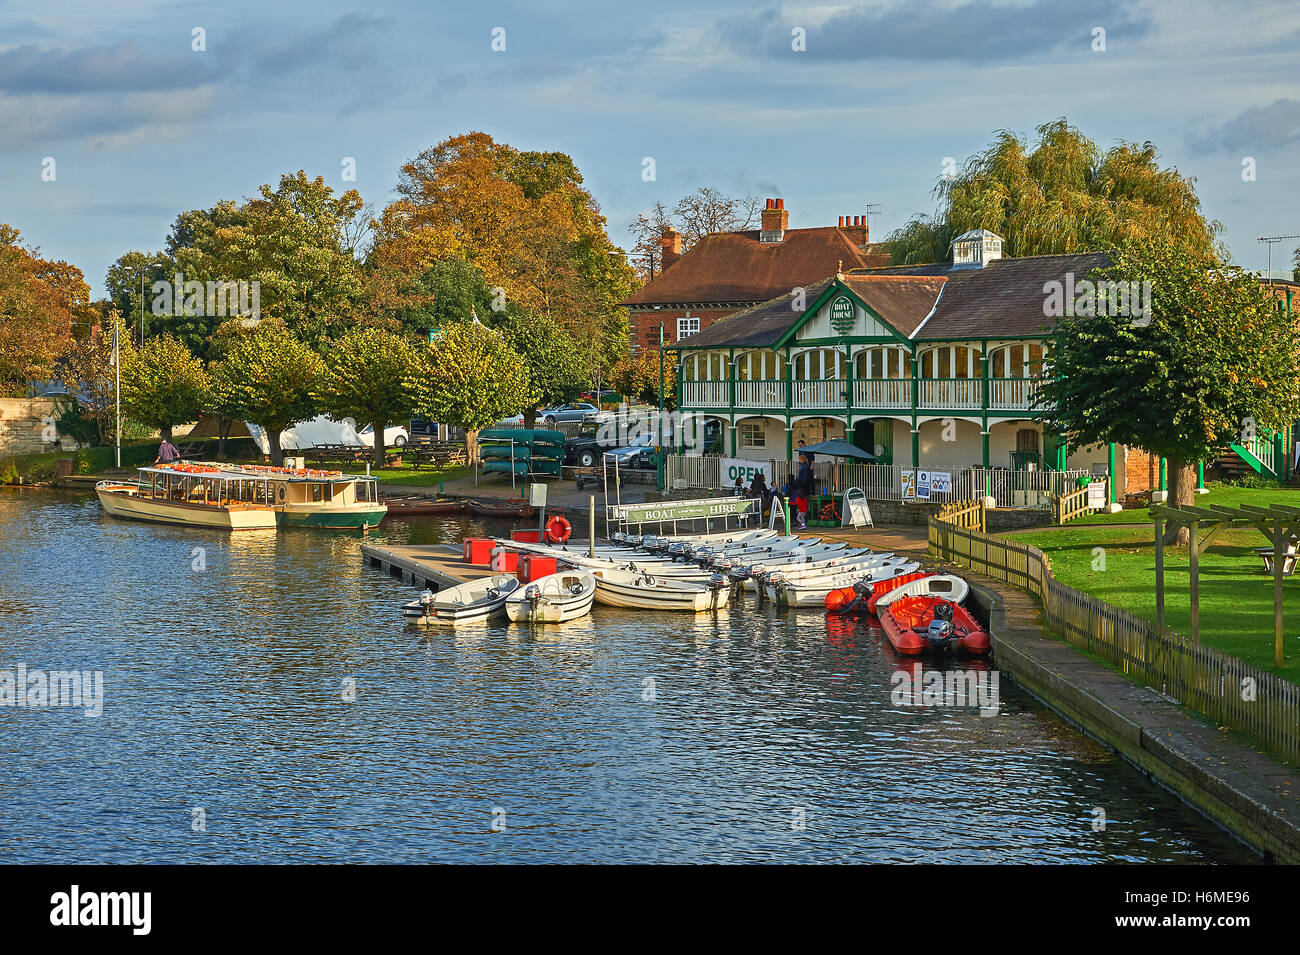 Boats moored outside the old boathouse on the River Avon in the heart of Stratford upon Avon - Stock Image